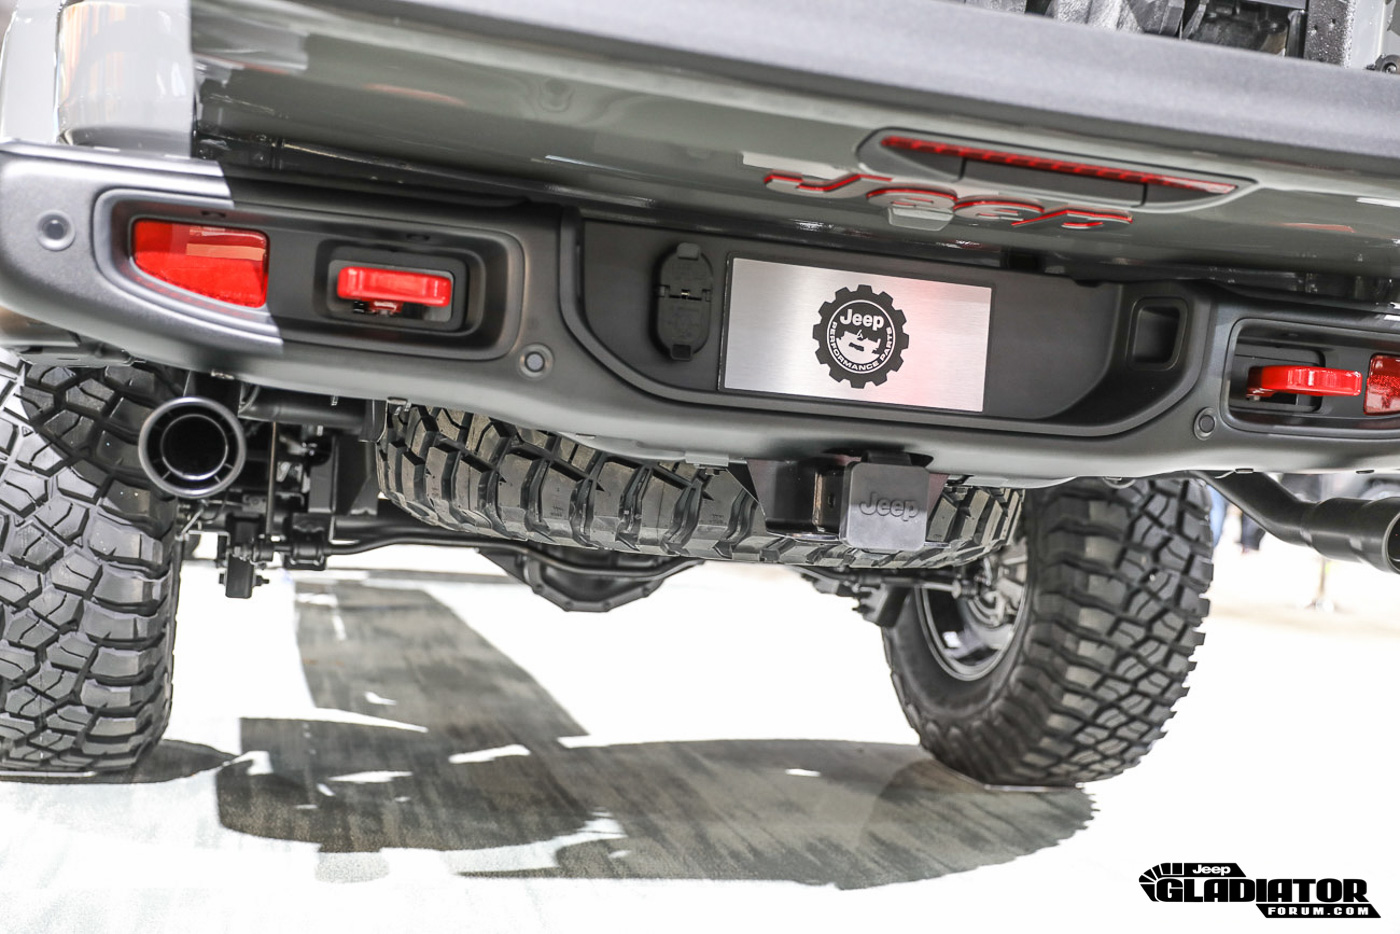 Underside / chassis photos of Jeep Gladiator   Jeep ...